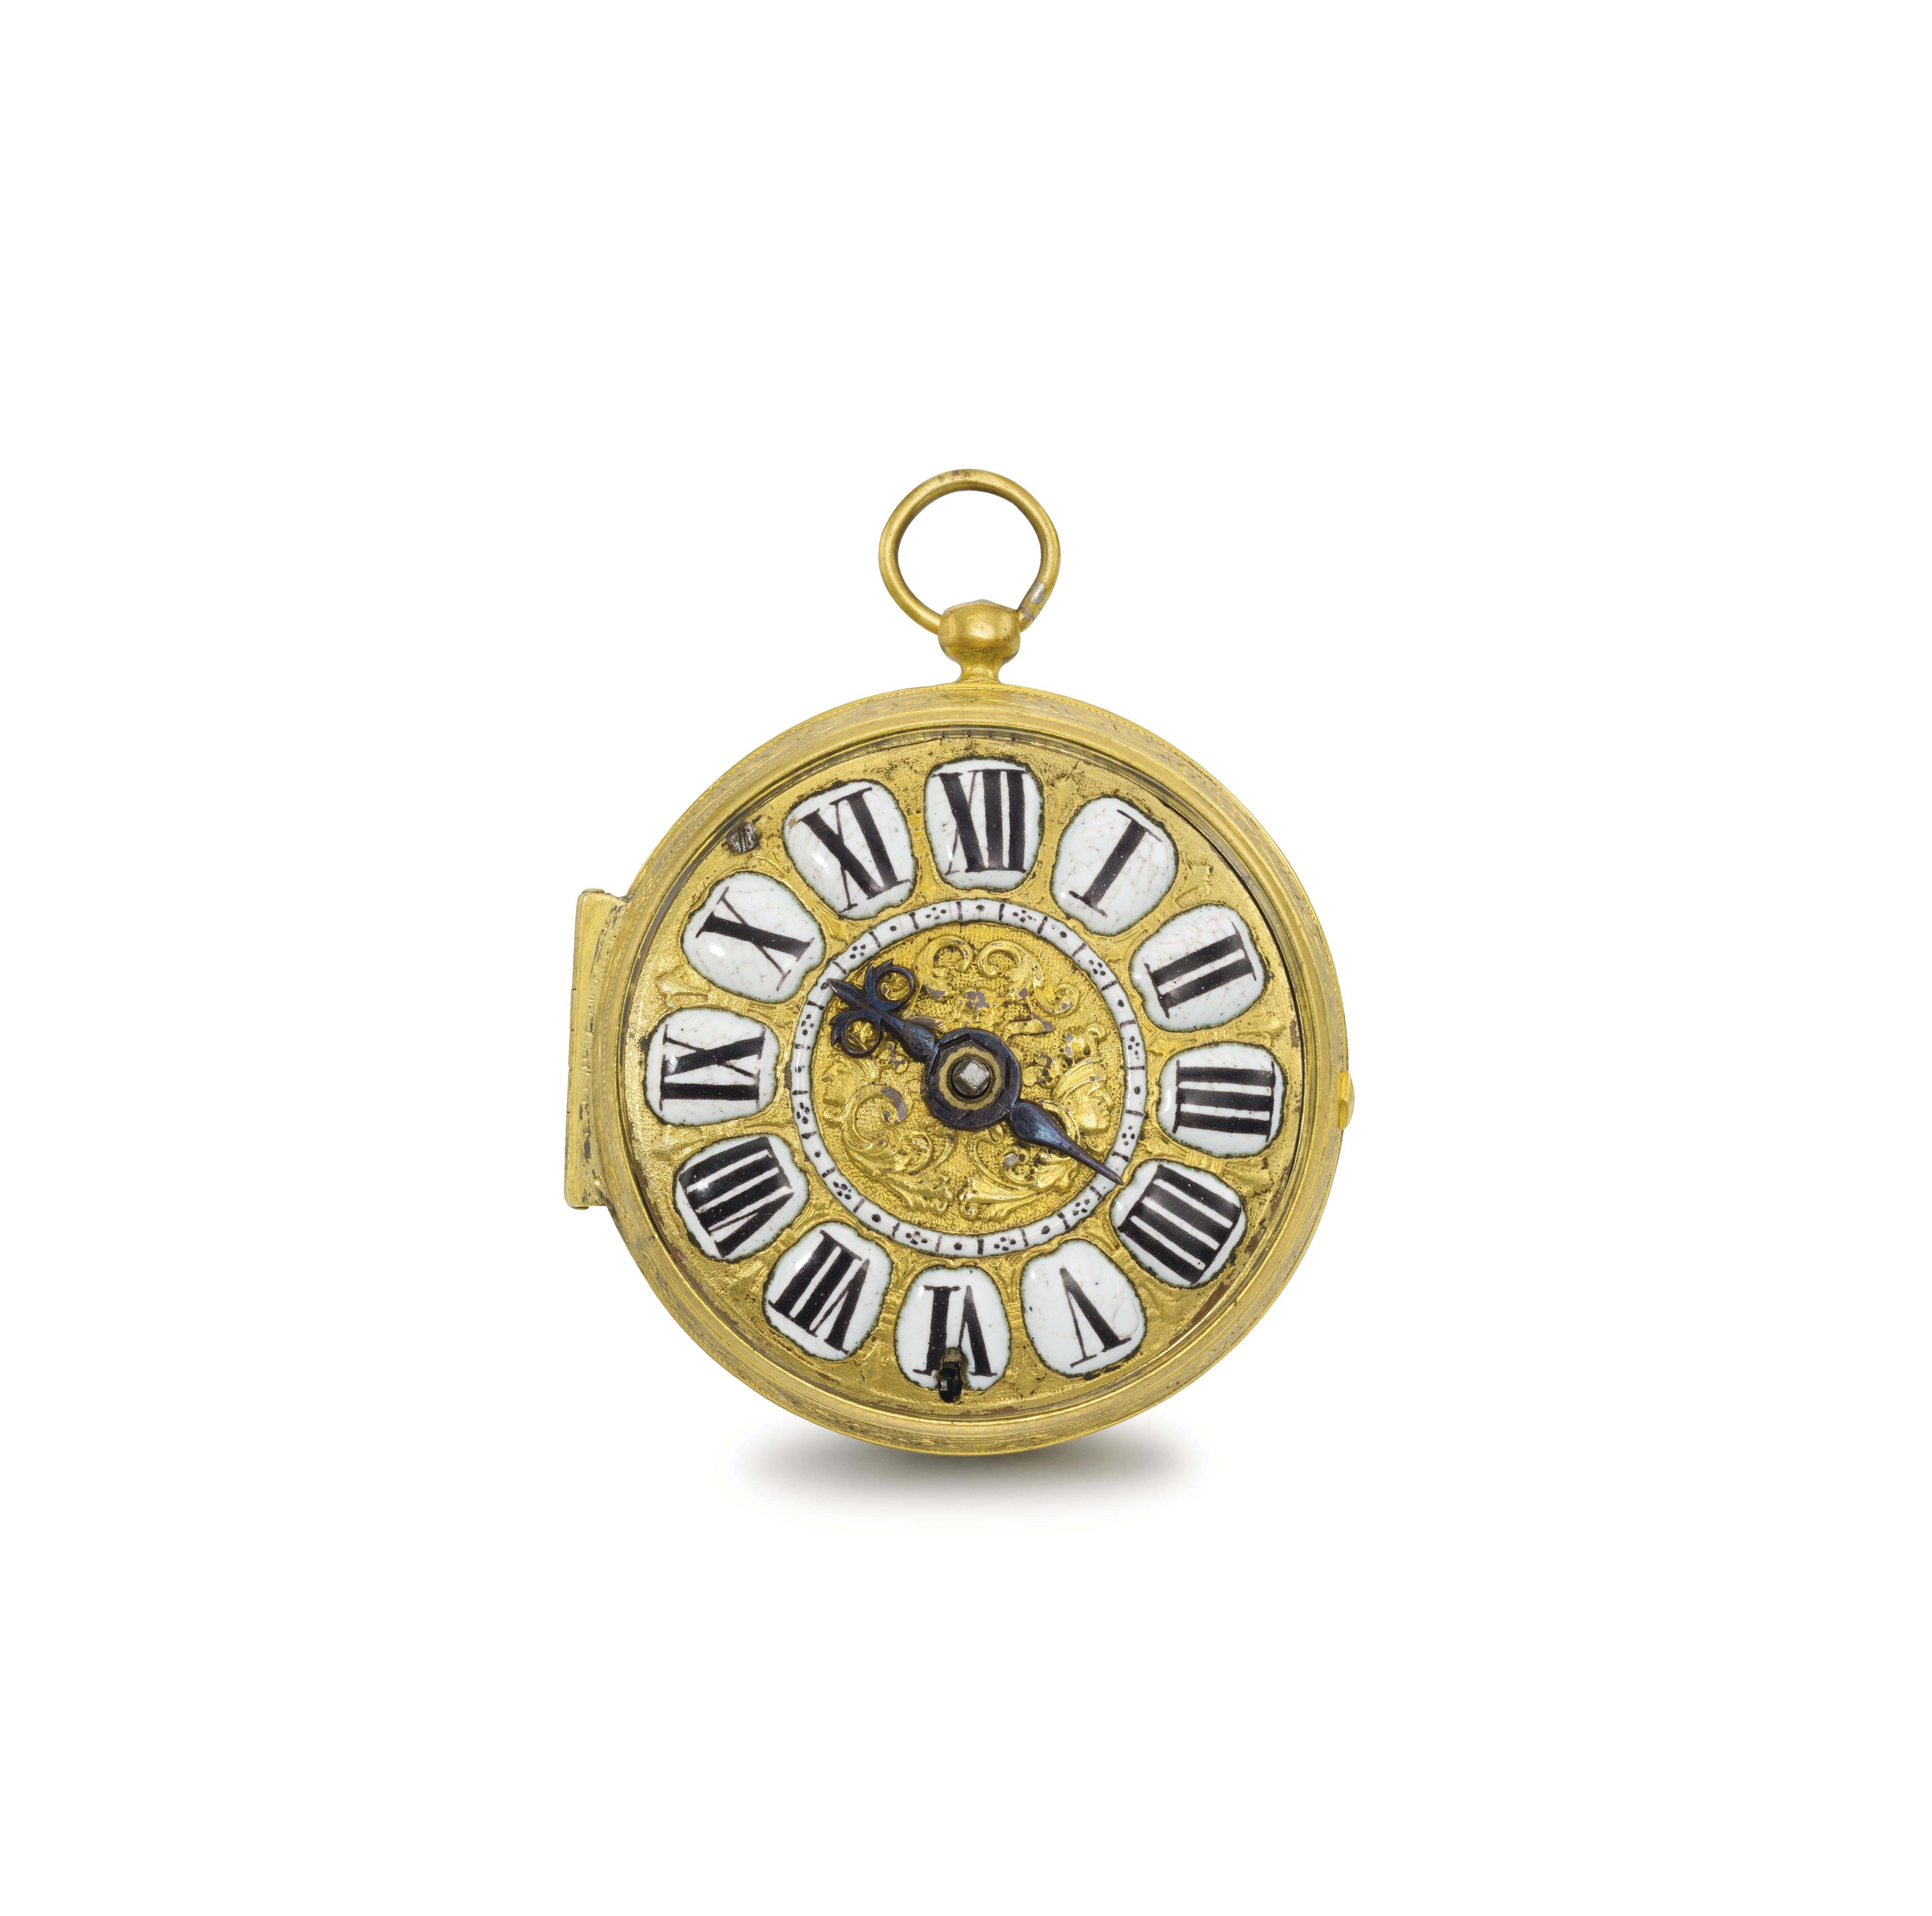 Jerome Martinot. A fine and rare early gilt and enamel oignon verge watch